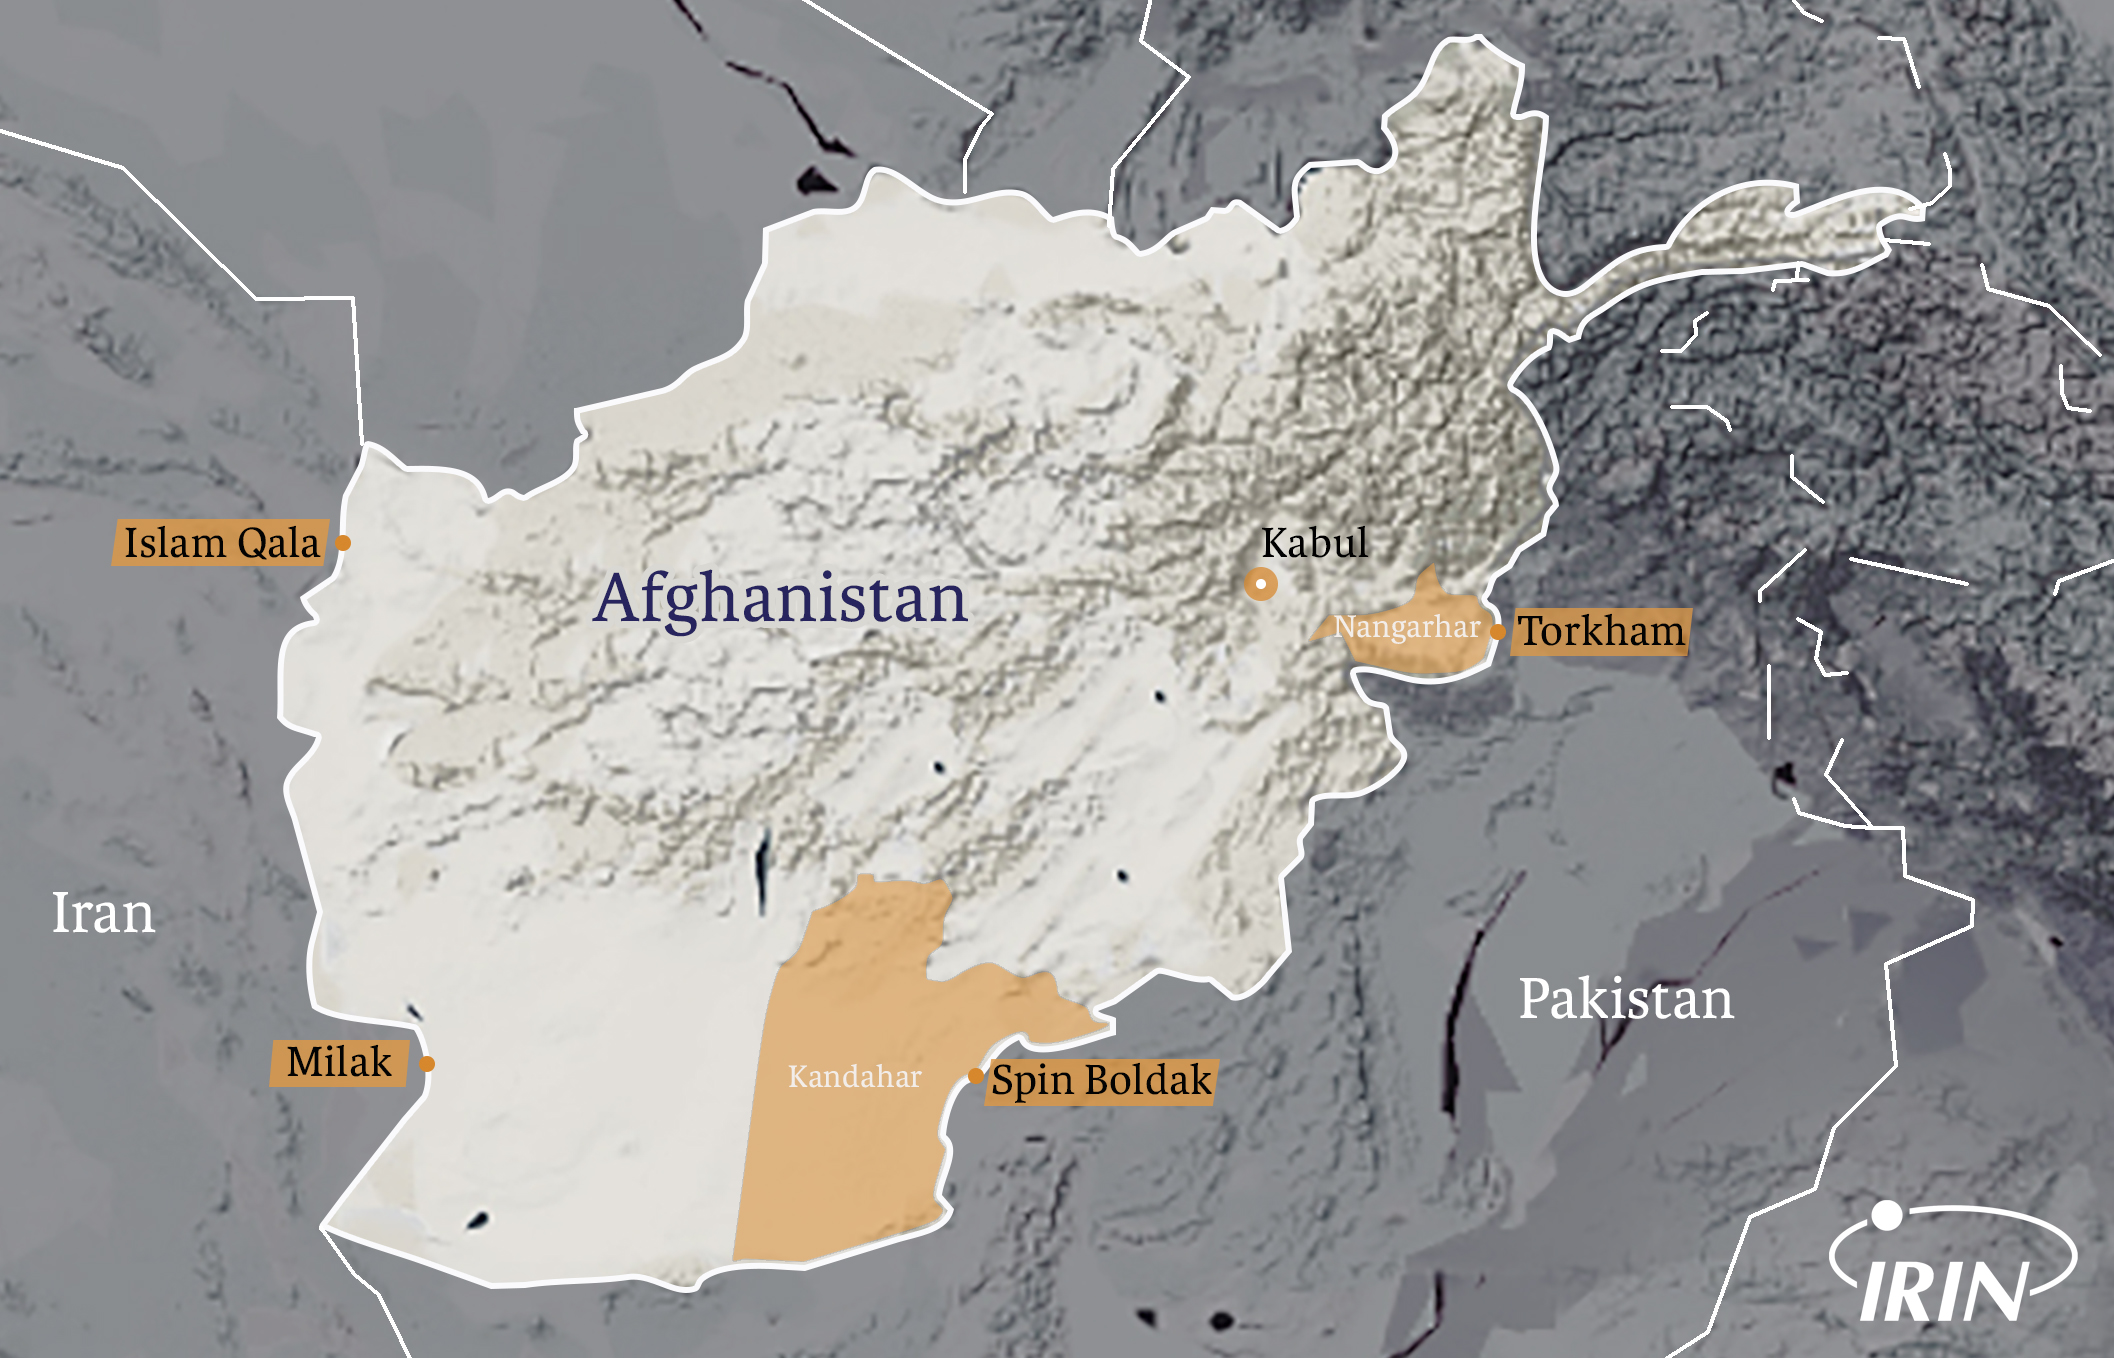 Map of Afghanistan featuring Nangarhar and Kandarhar Provinces as well as prominent border crossings